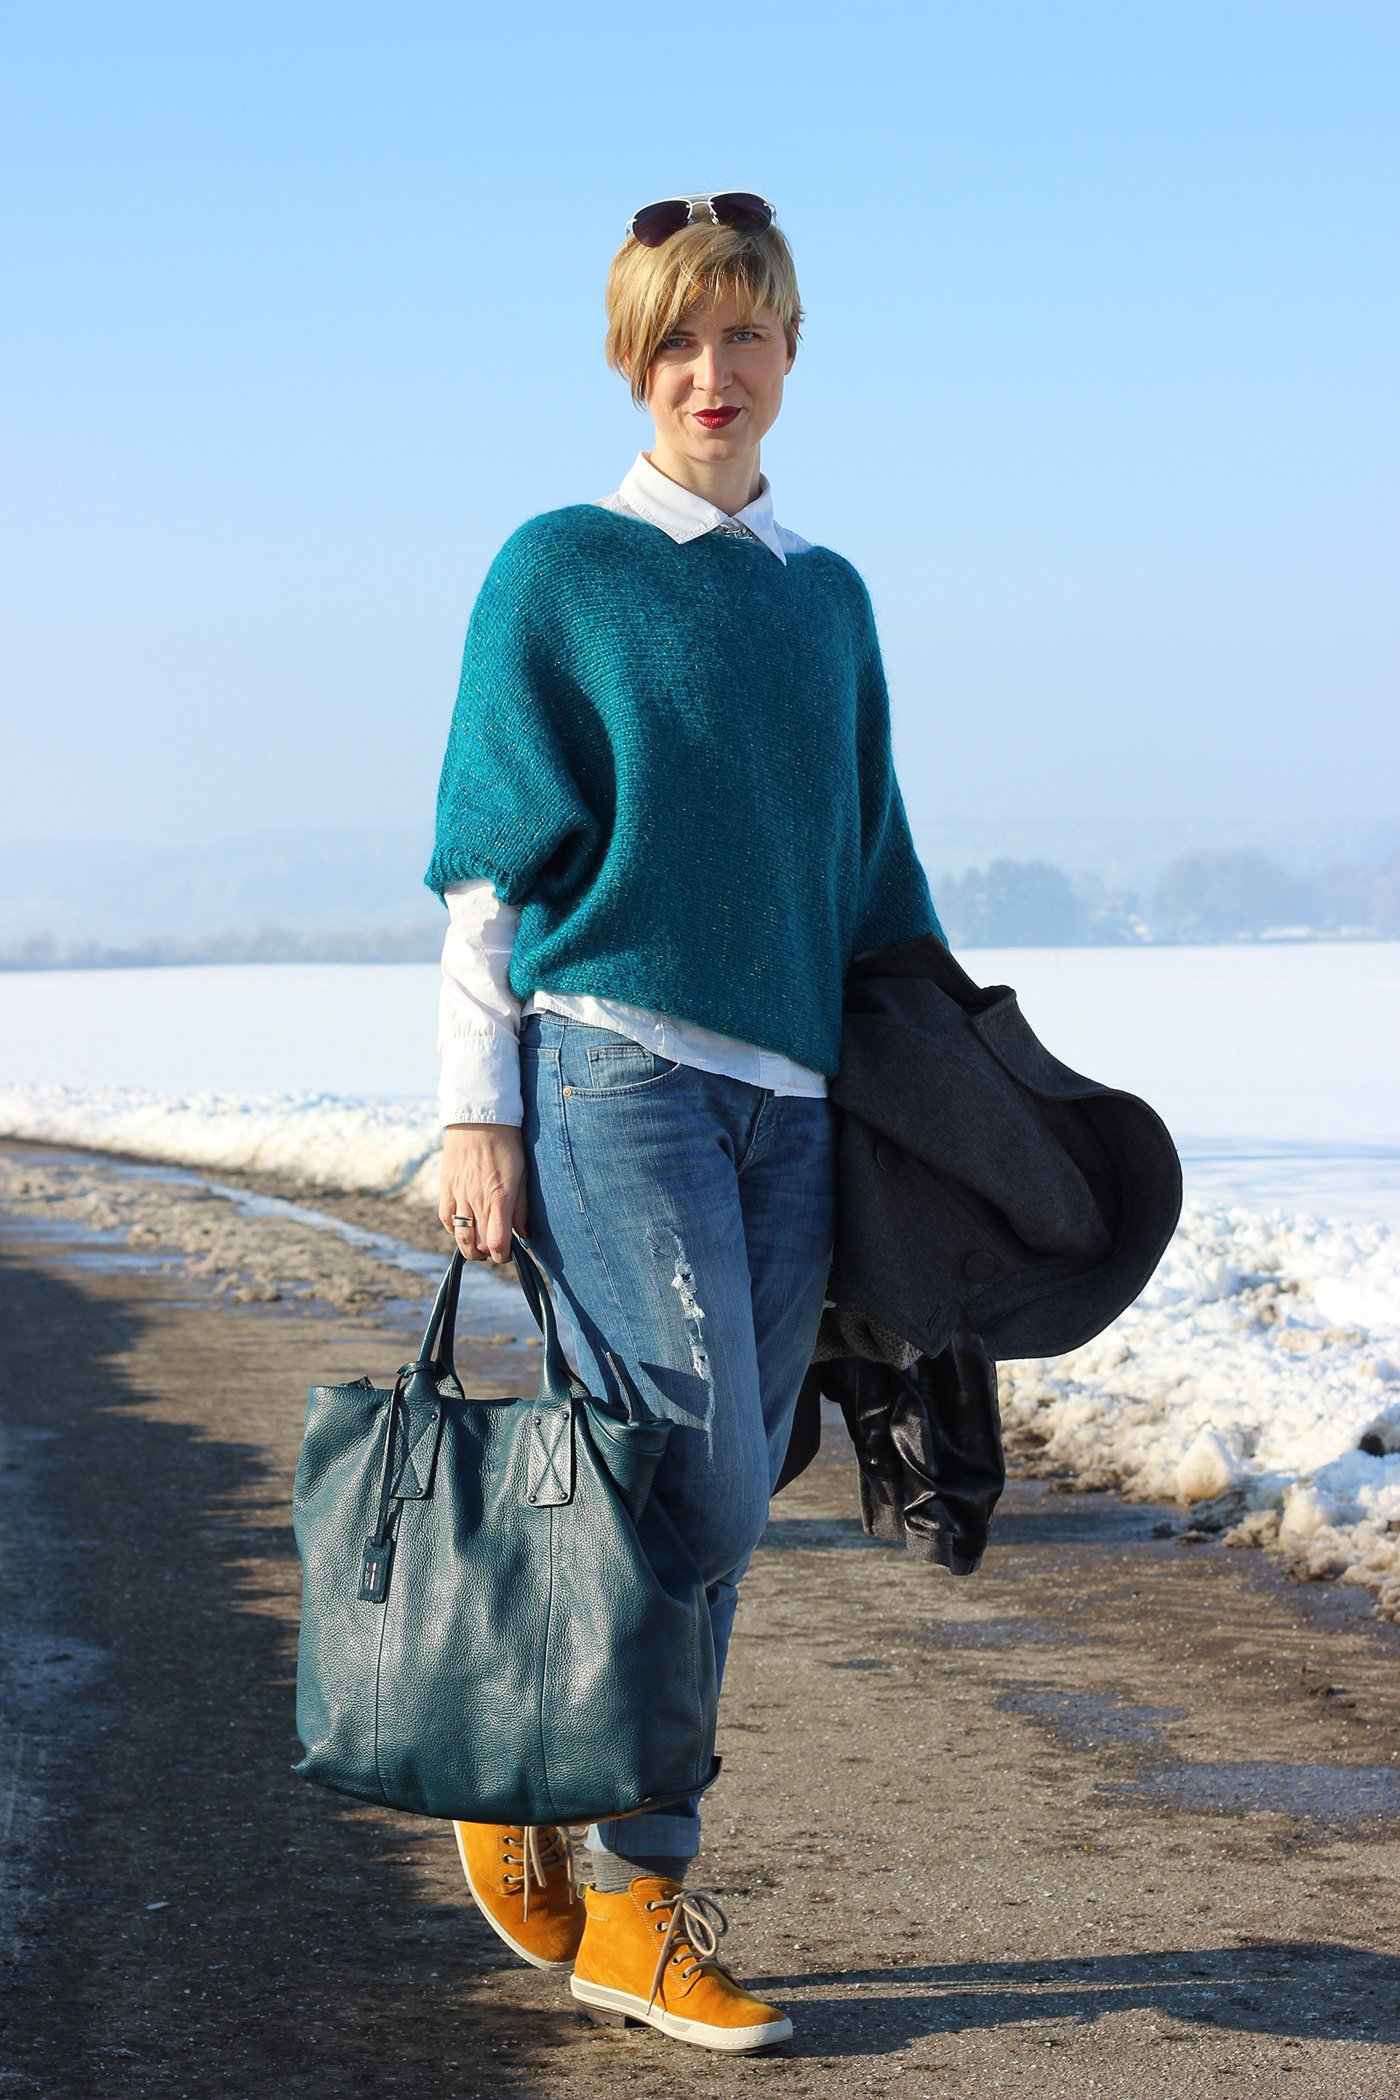 IMG_7202a_ConnyDoll_grau_tuerkis_petrol_Lagenlook_Strickpulli_RichandRoyal_paulgreen_loop_winterlook_wintersun_mustardyellow